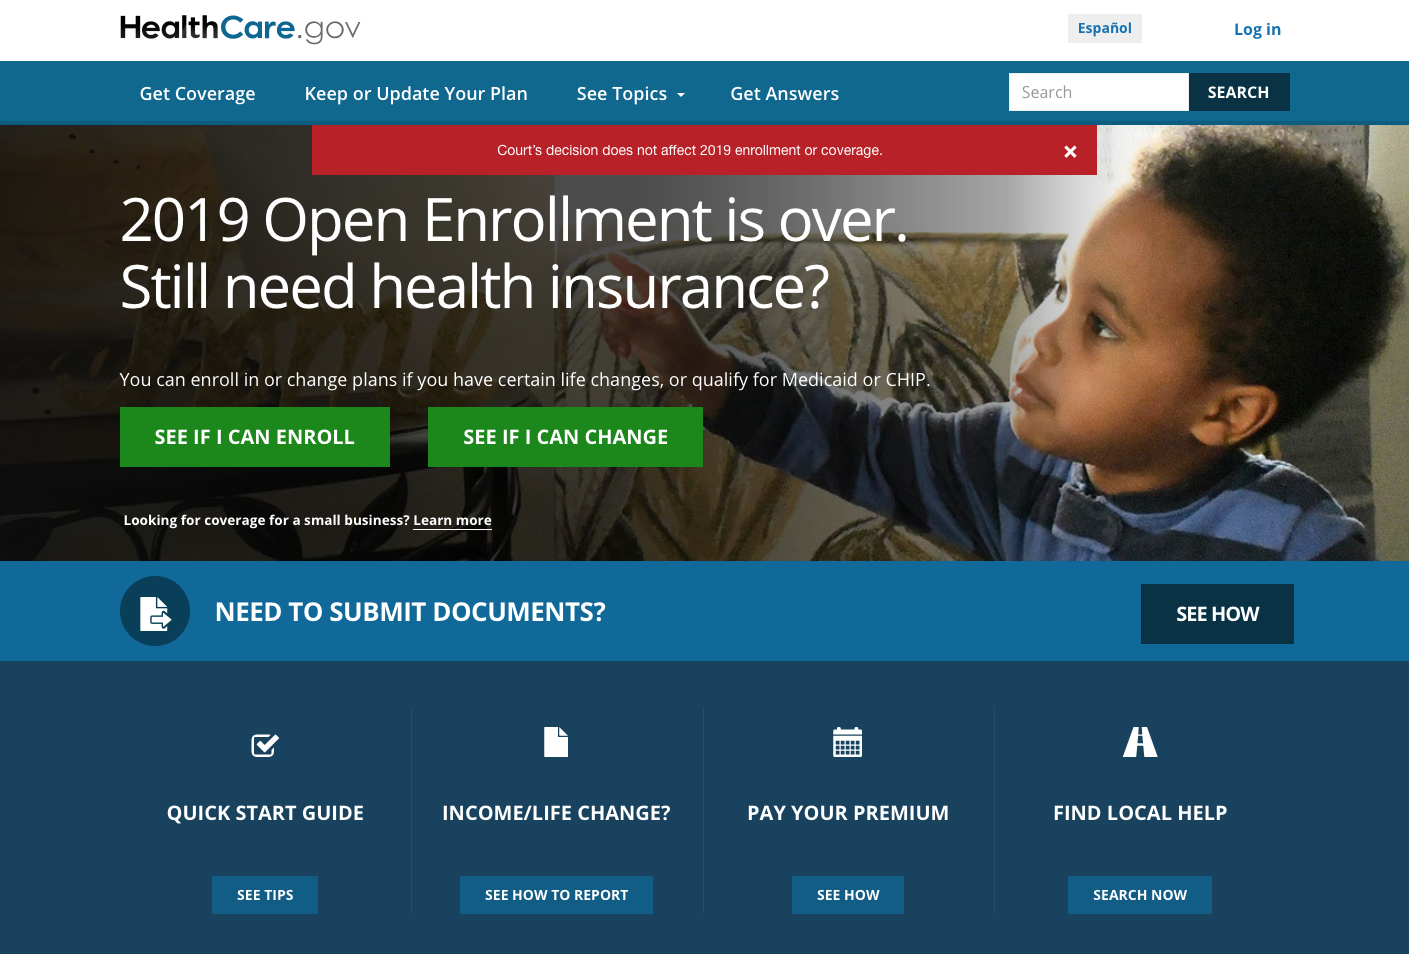 Federal judge in Texas rules Affordable Care Act unconstitutional